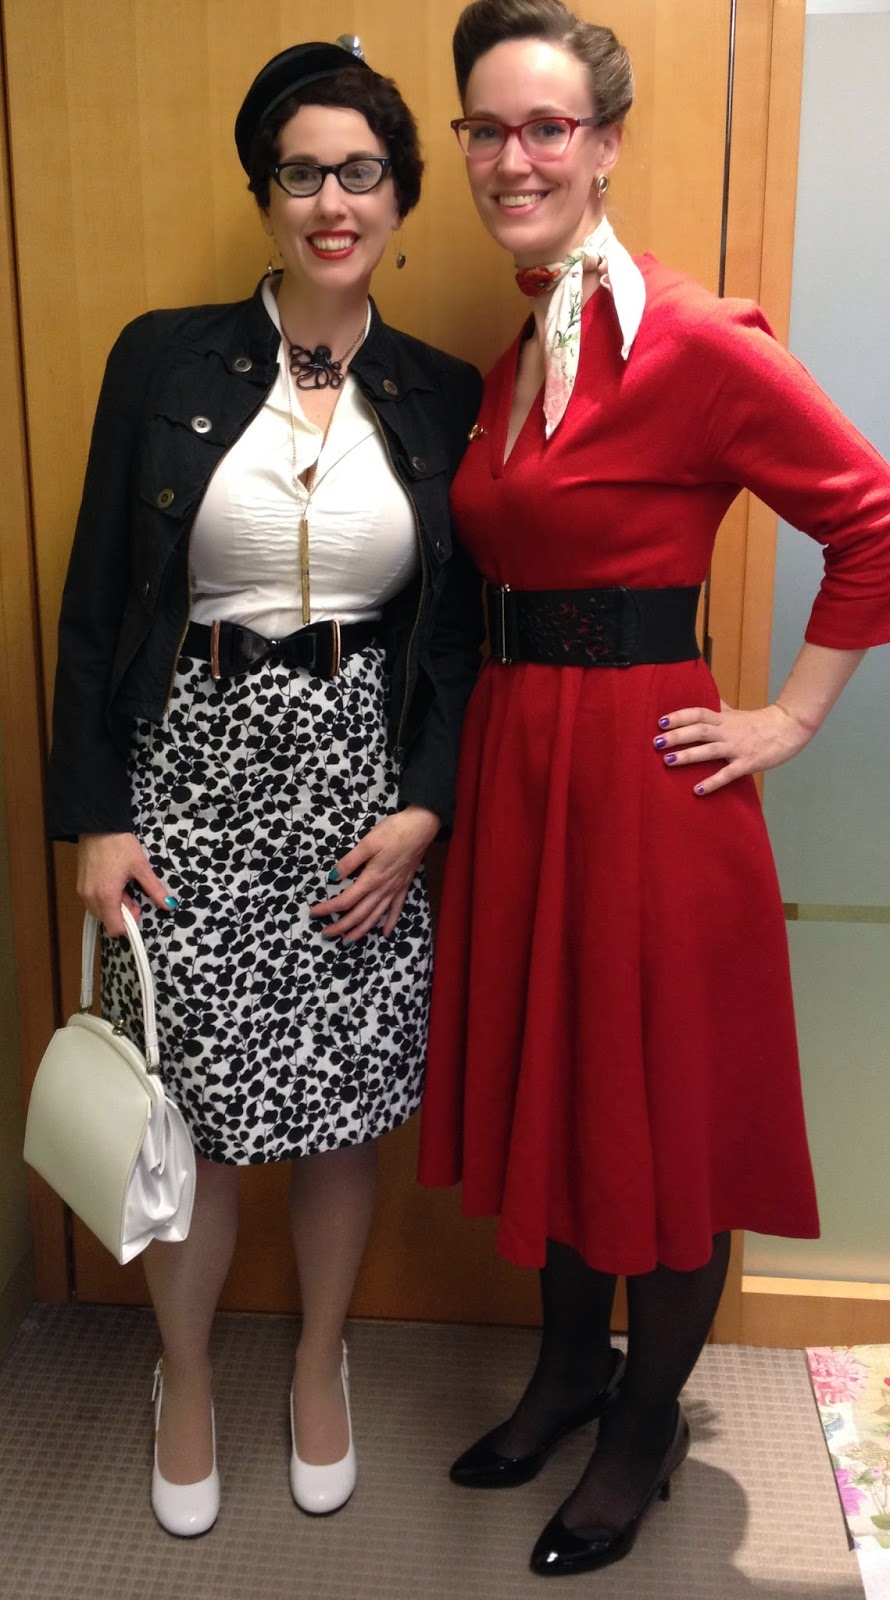 Belts ~ It's What's for Your Waist - Part 5 On Gail Carriger